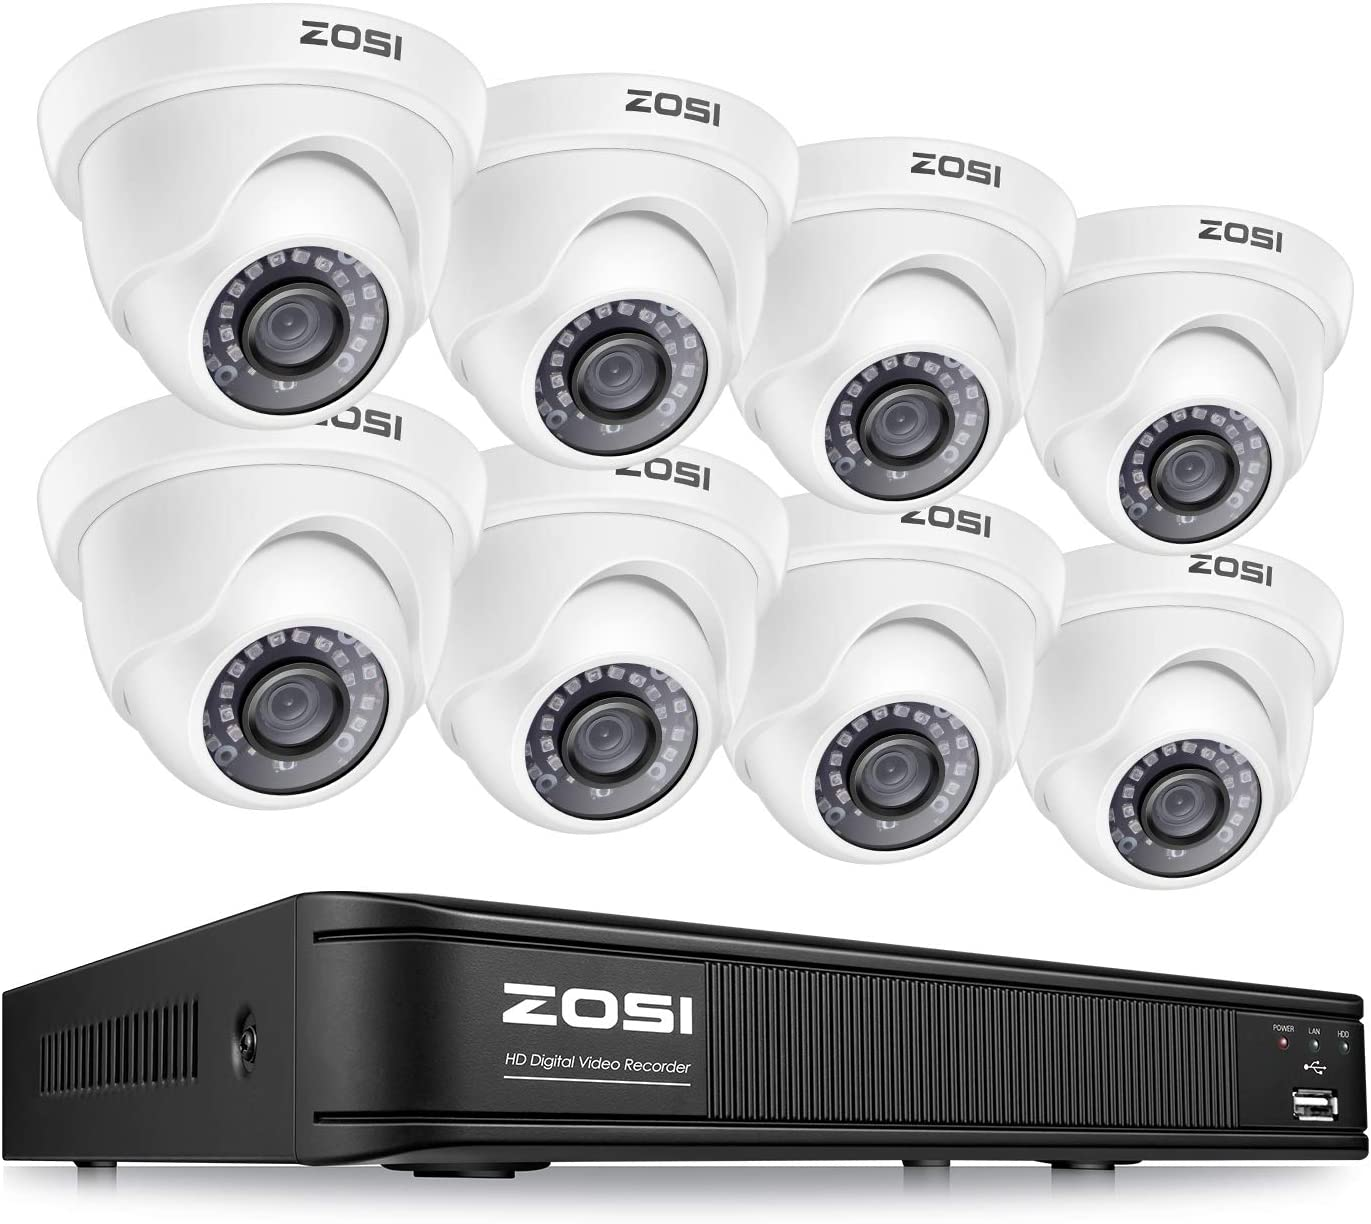 ZOSI H.265+ 1080p Home Security Camera System Outdoor Indoor, 8 Channel CCTV DVR Recorder and 8 x 1080p Surveillance Dome Camera, Remote Access, Motion Detection (No Hard Drive)